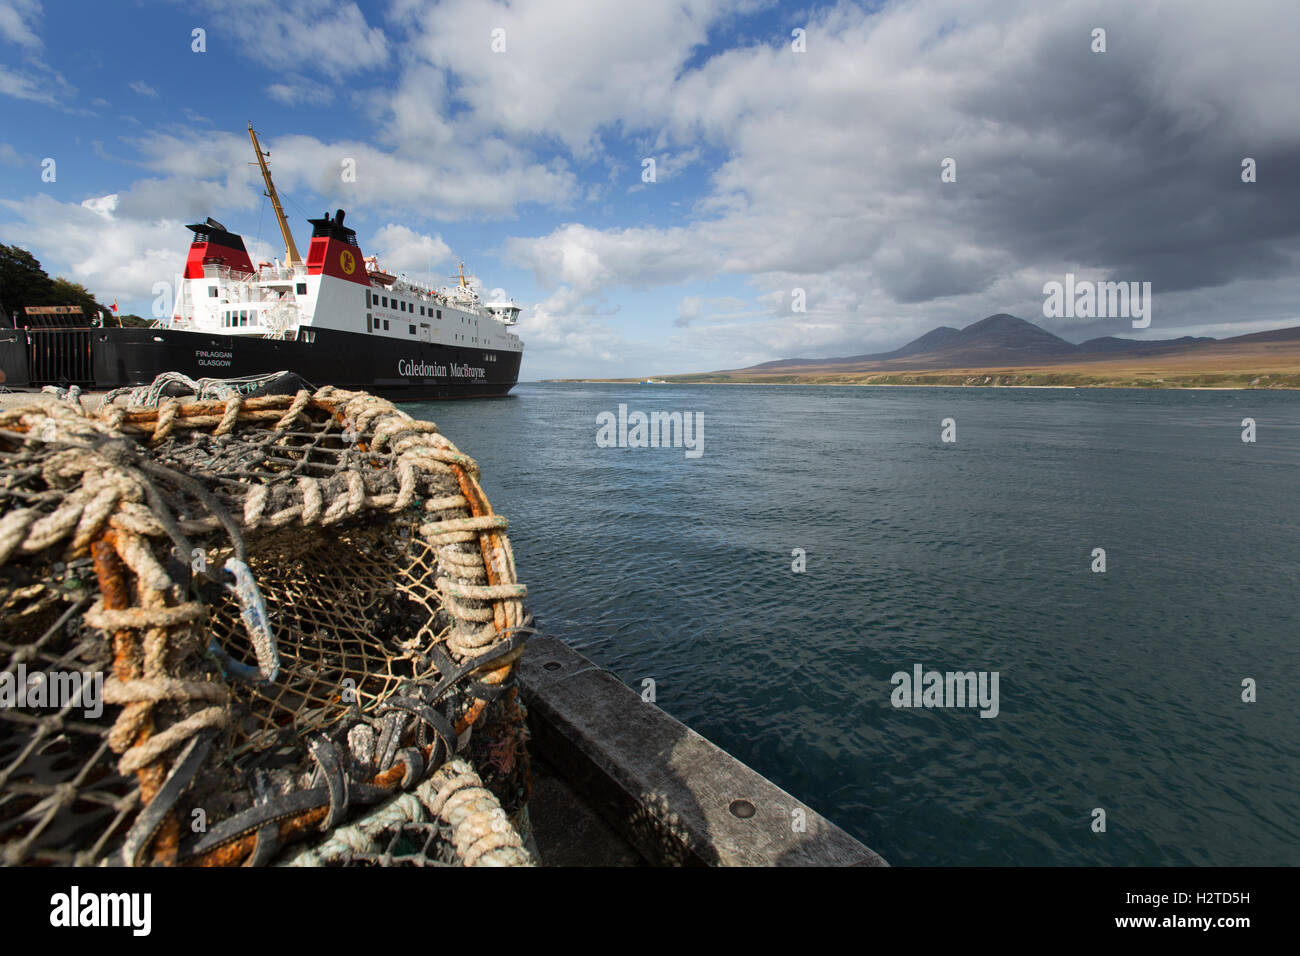 Isle of Islay, Scotland. Picturesque view of the CalMac ferry, MV Finlaggan, docked at Islay's Port Askaig. Stock Photo